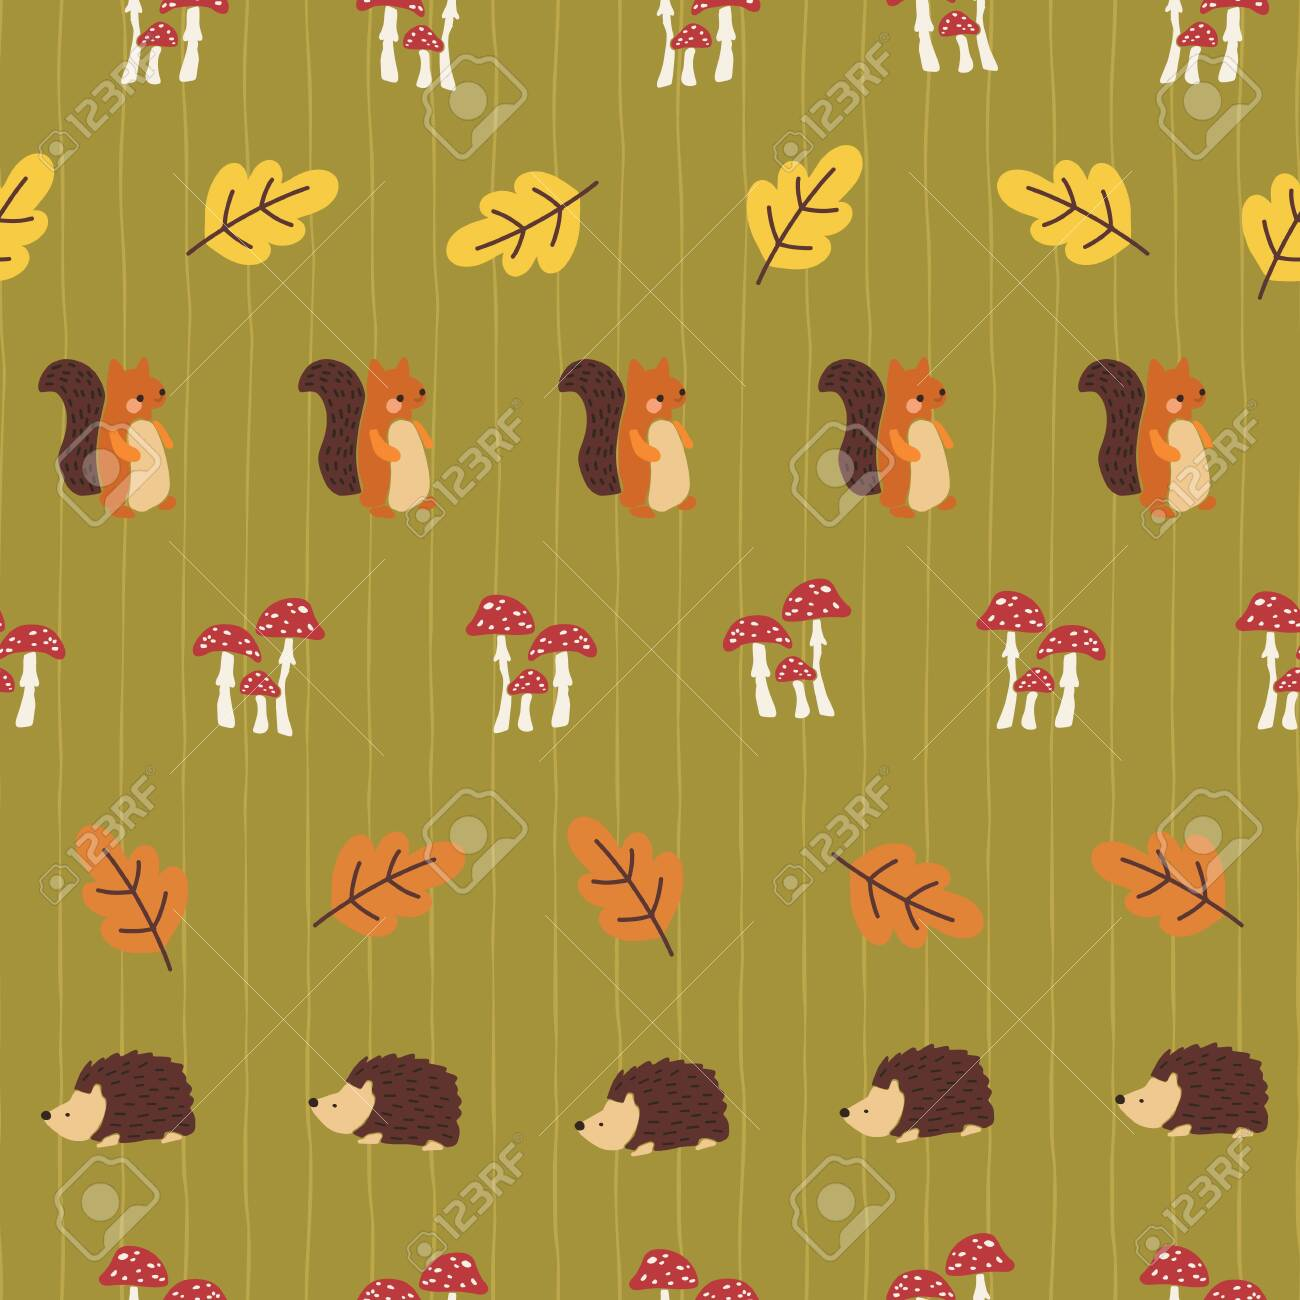 Squirrel Hedgehog Toadstool Mushrooms Autumn Leaf Seamless Vector Royalty Free Cliparts Vectors And Stock Illustration Image 132871842